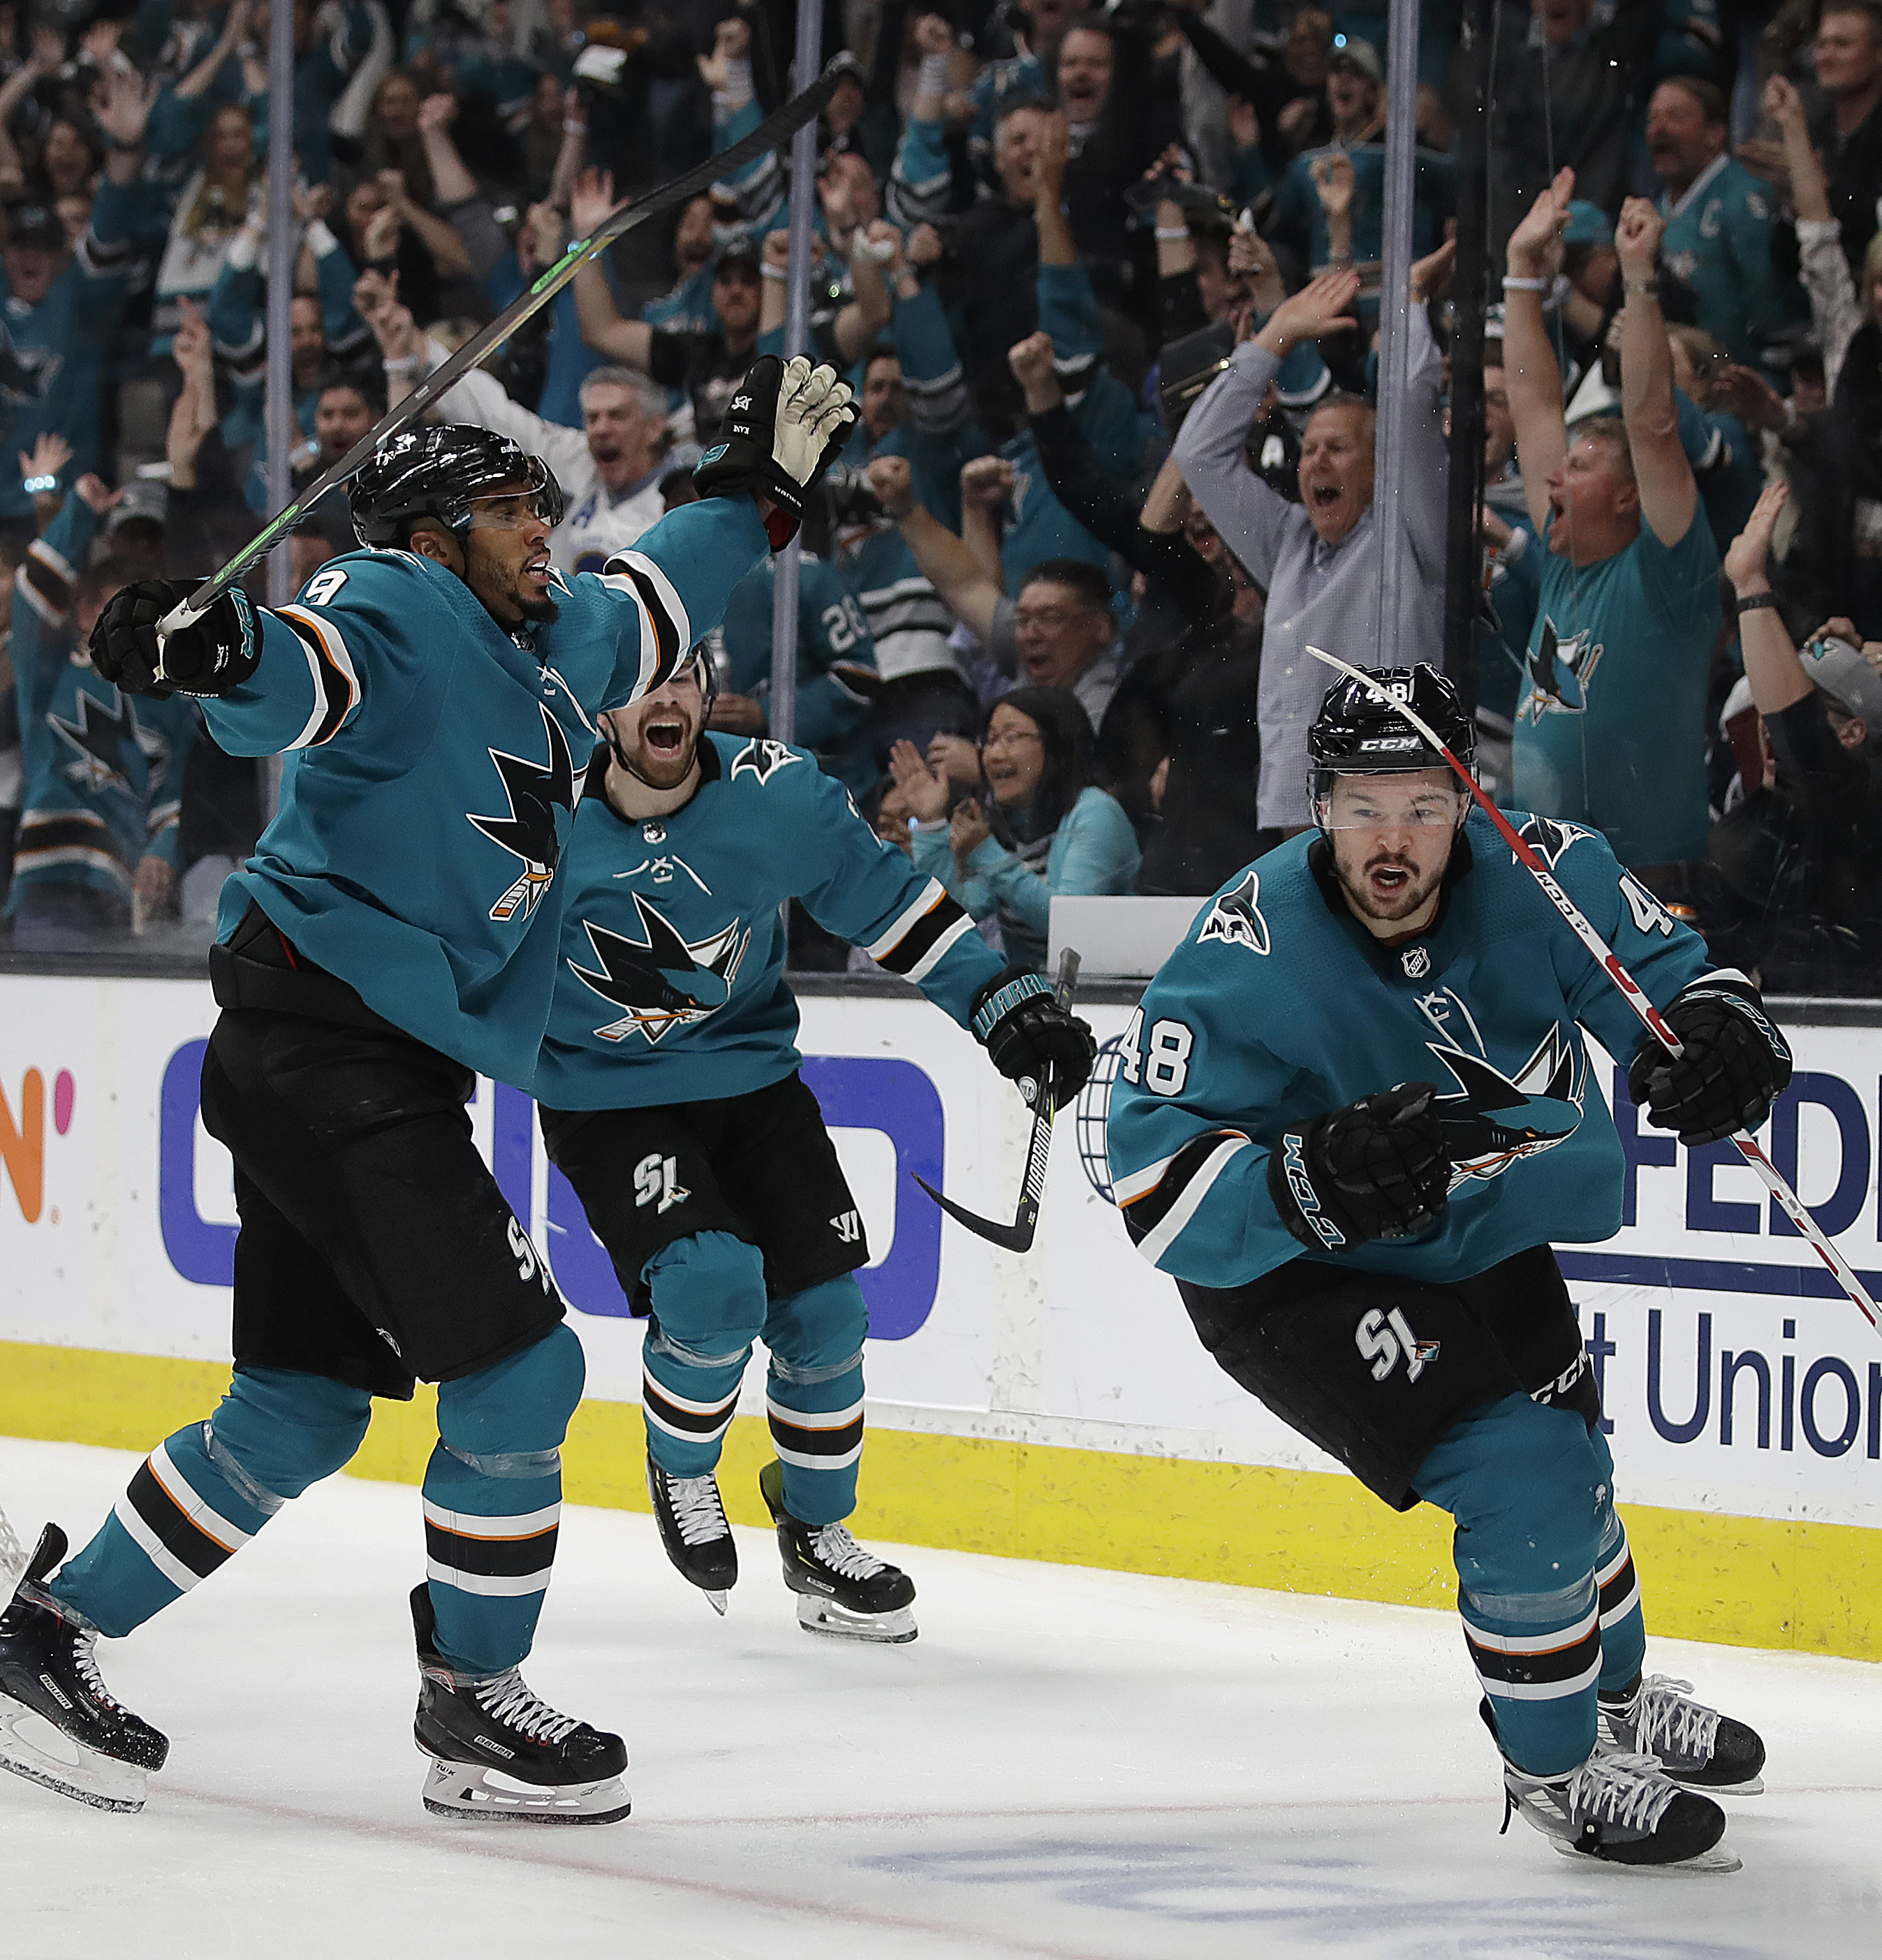 Hertl scores 2, Sharks beat Avalanche 2-1 in Game 5